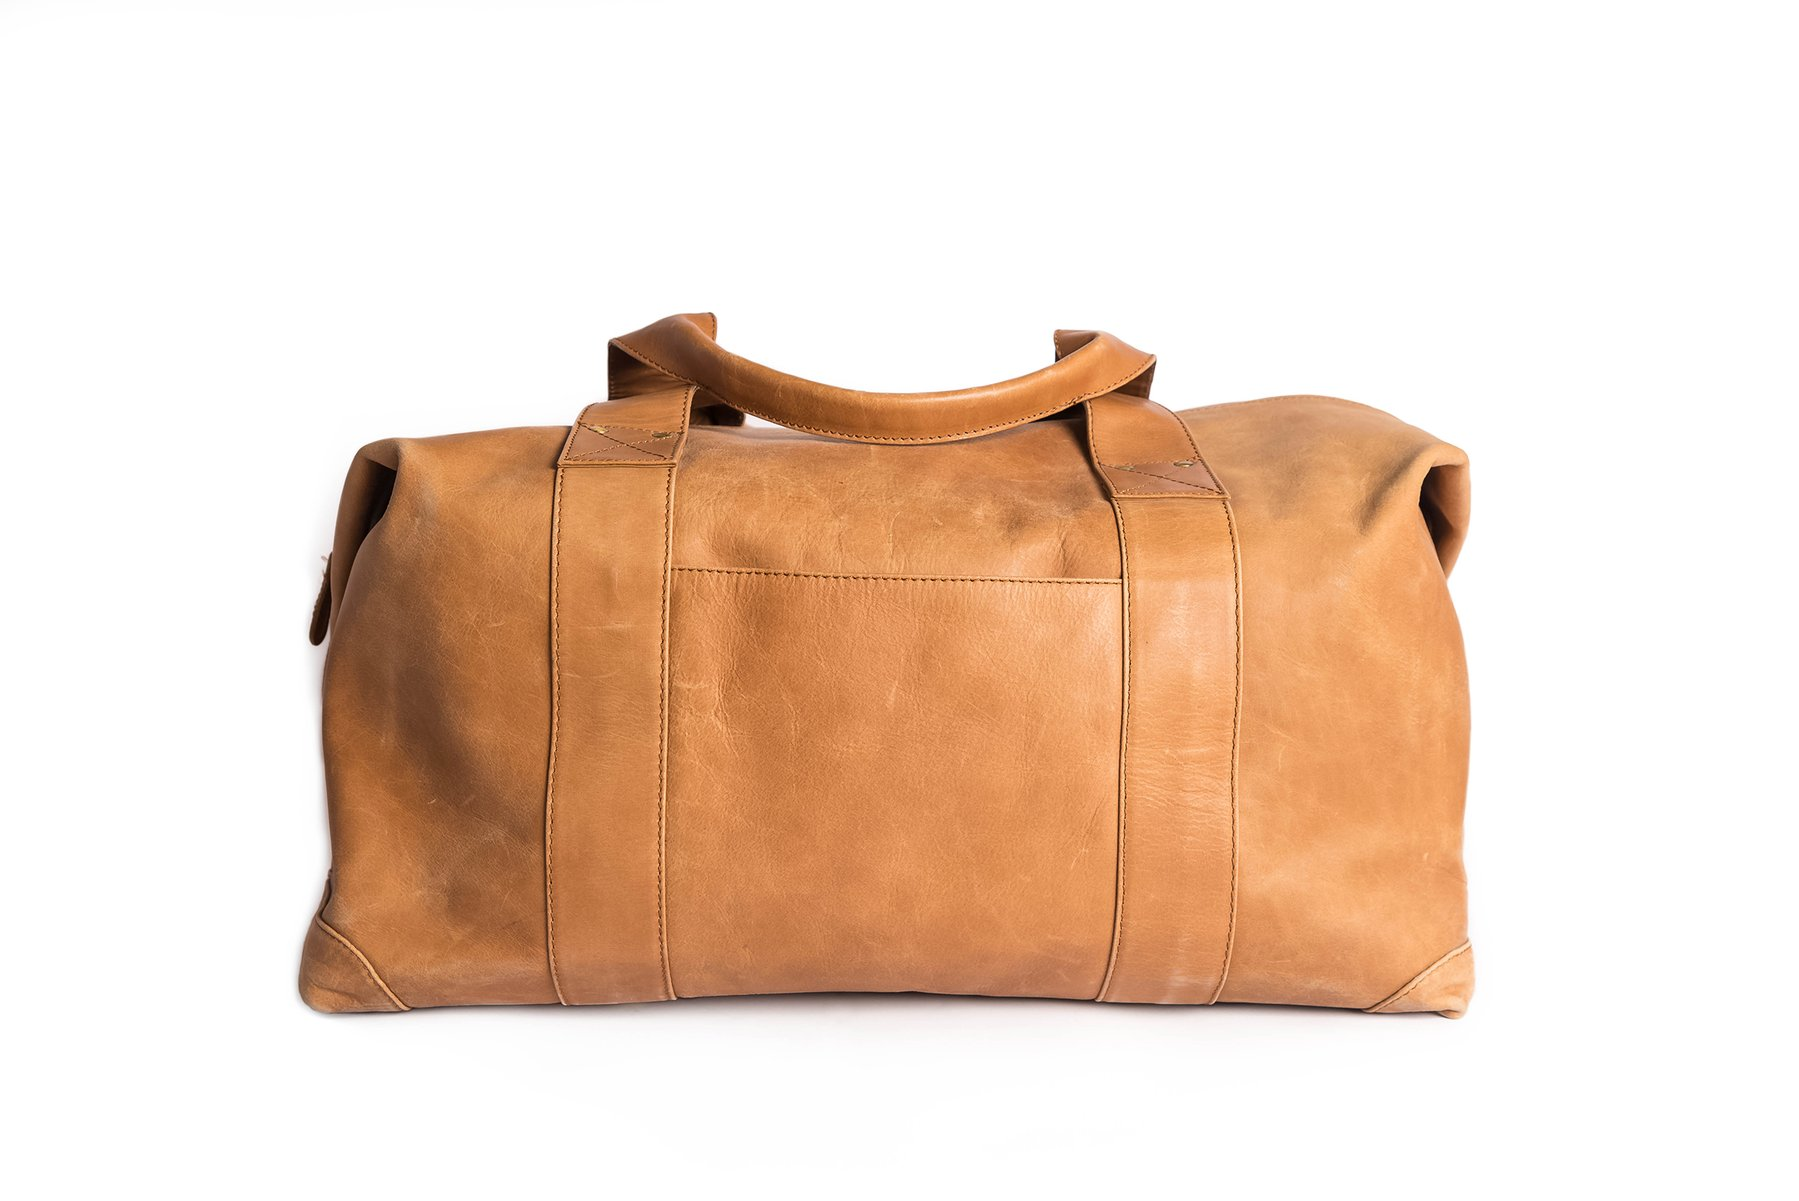 Frank Duffel Bag Sustainable Fashion